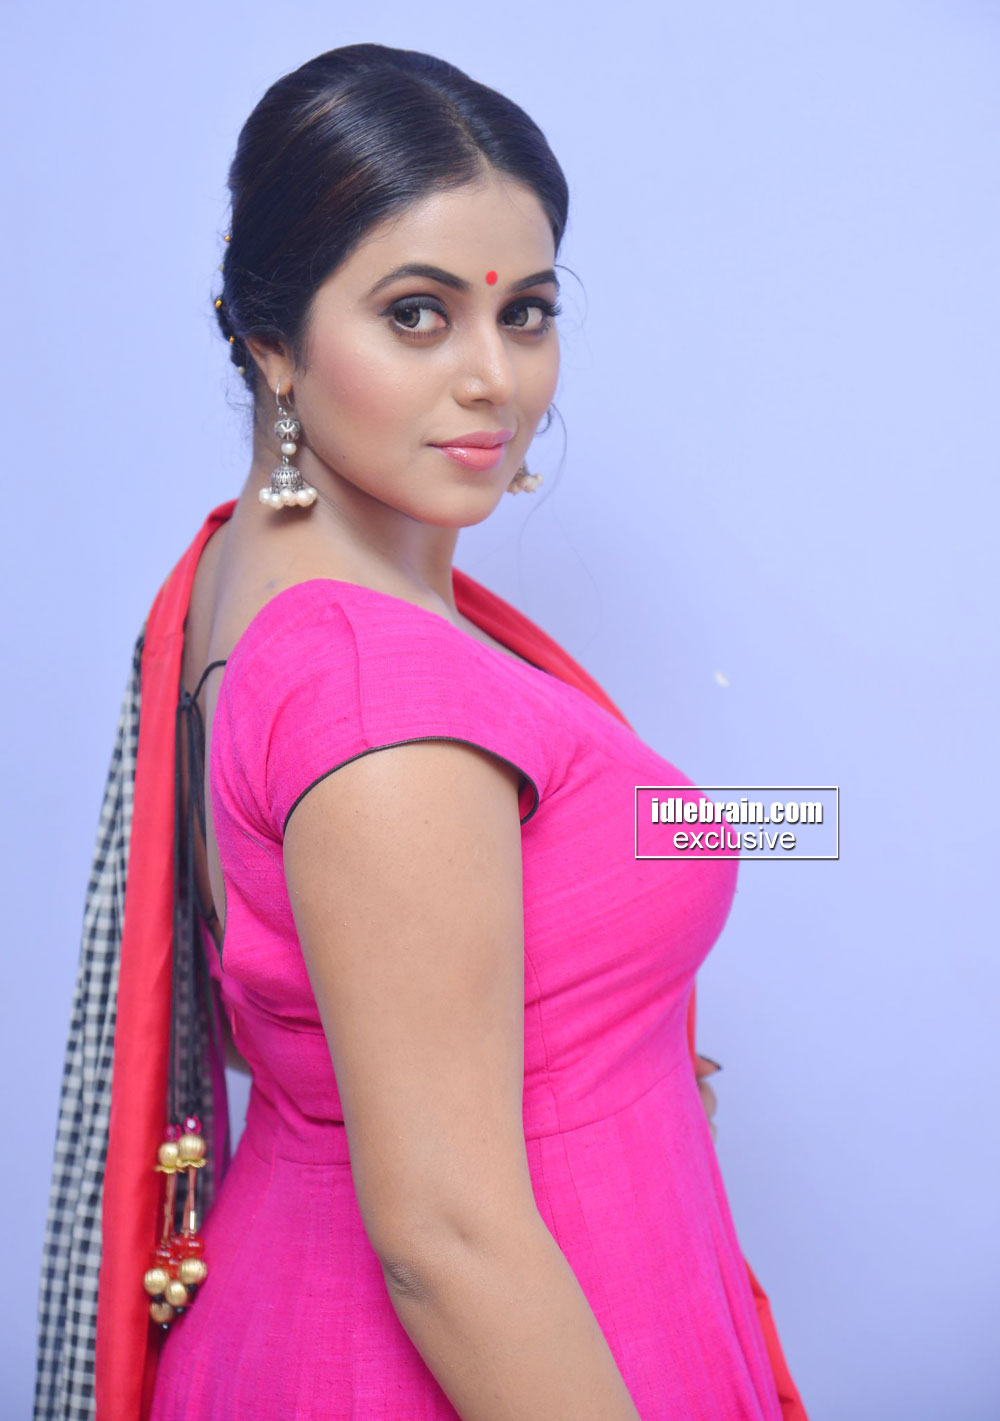 shamna kasim aka poorna latest photos mallufun